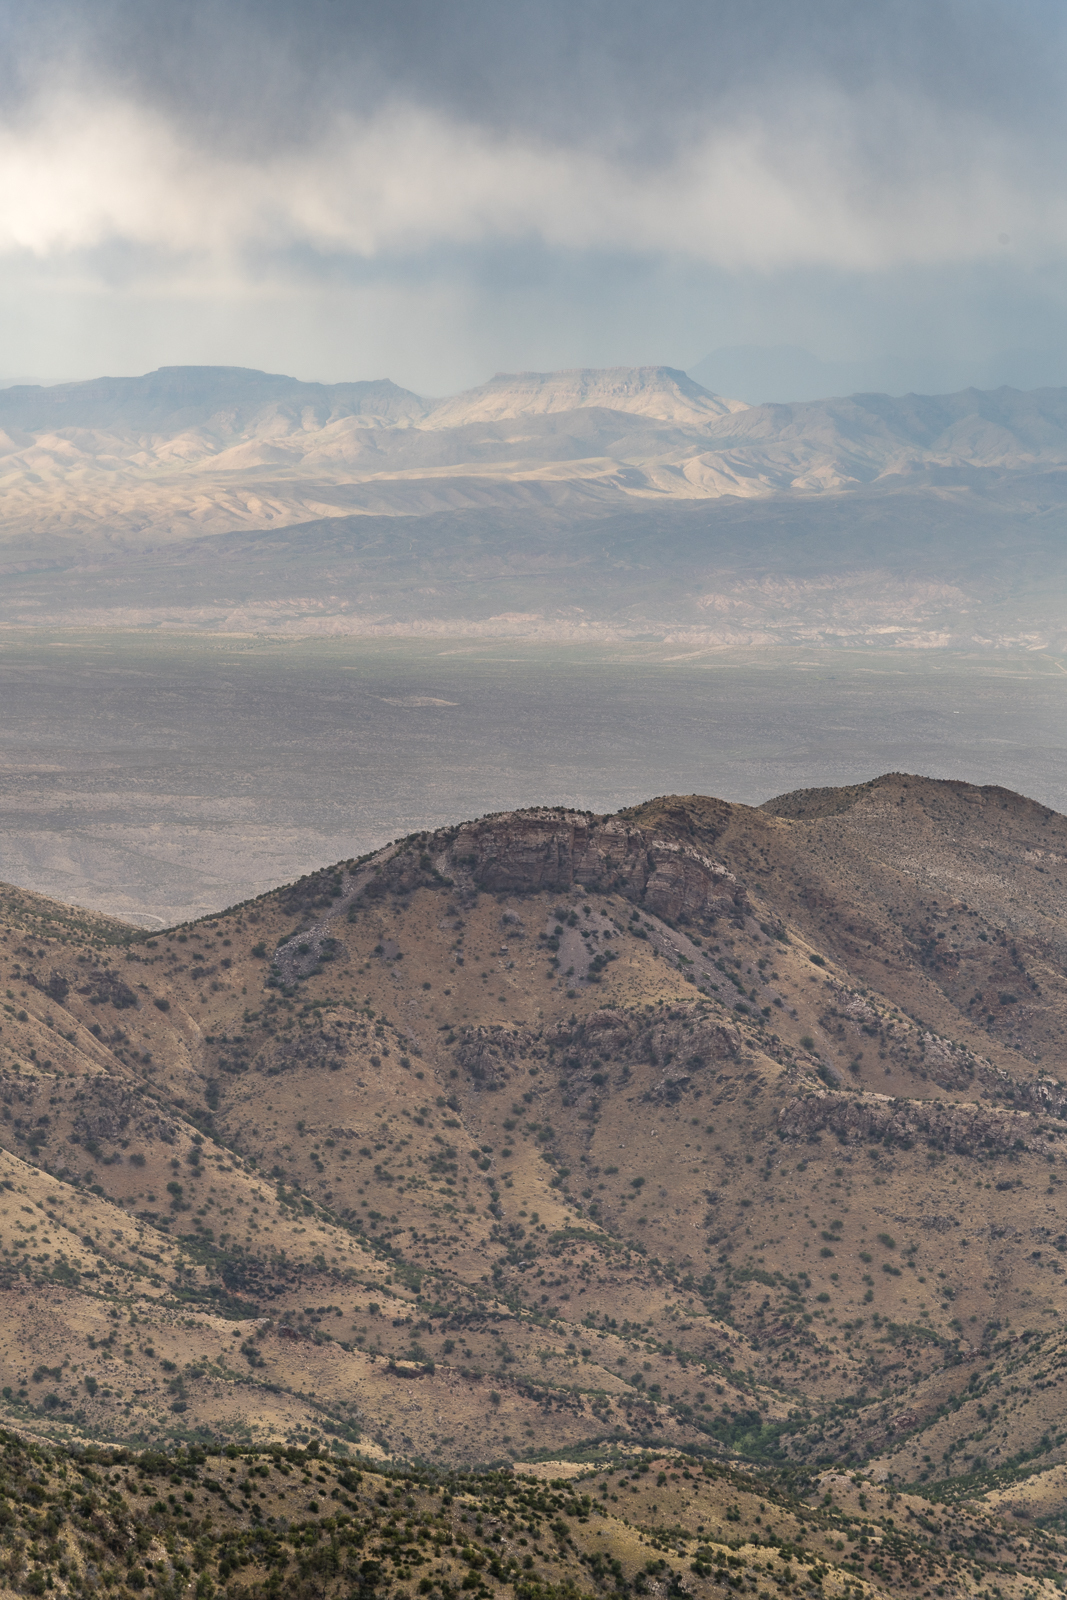 Looking over Peck Basin and Point 5817 and across the San Pedro River Valley to the Galiuro Mountains. April 2016.